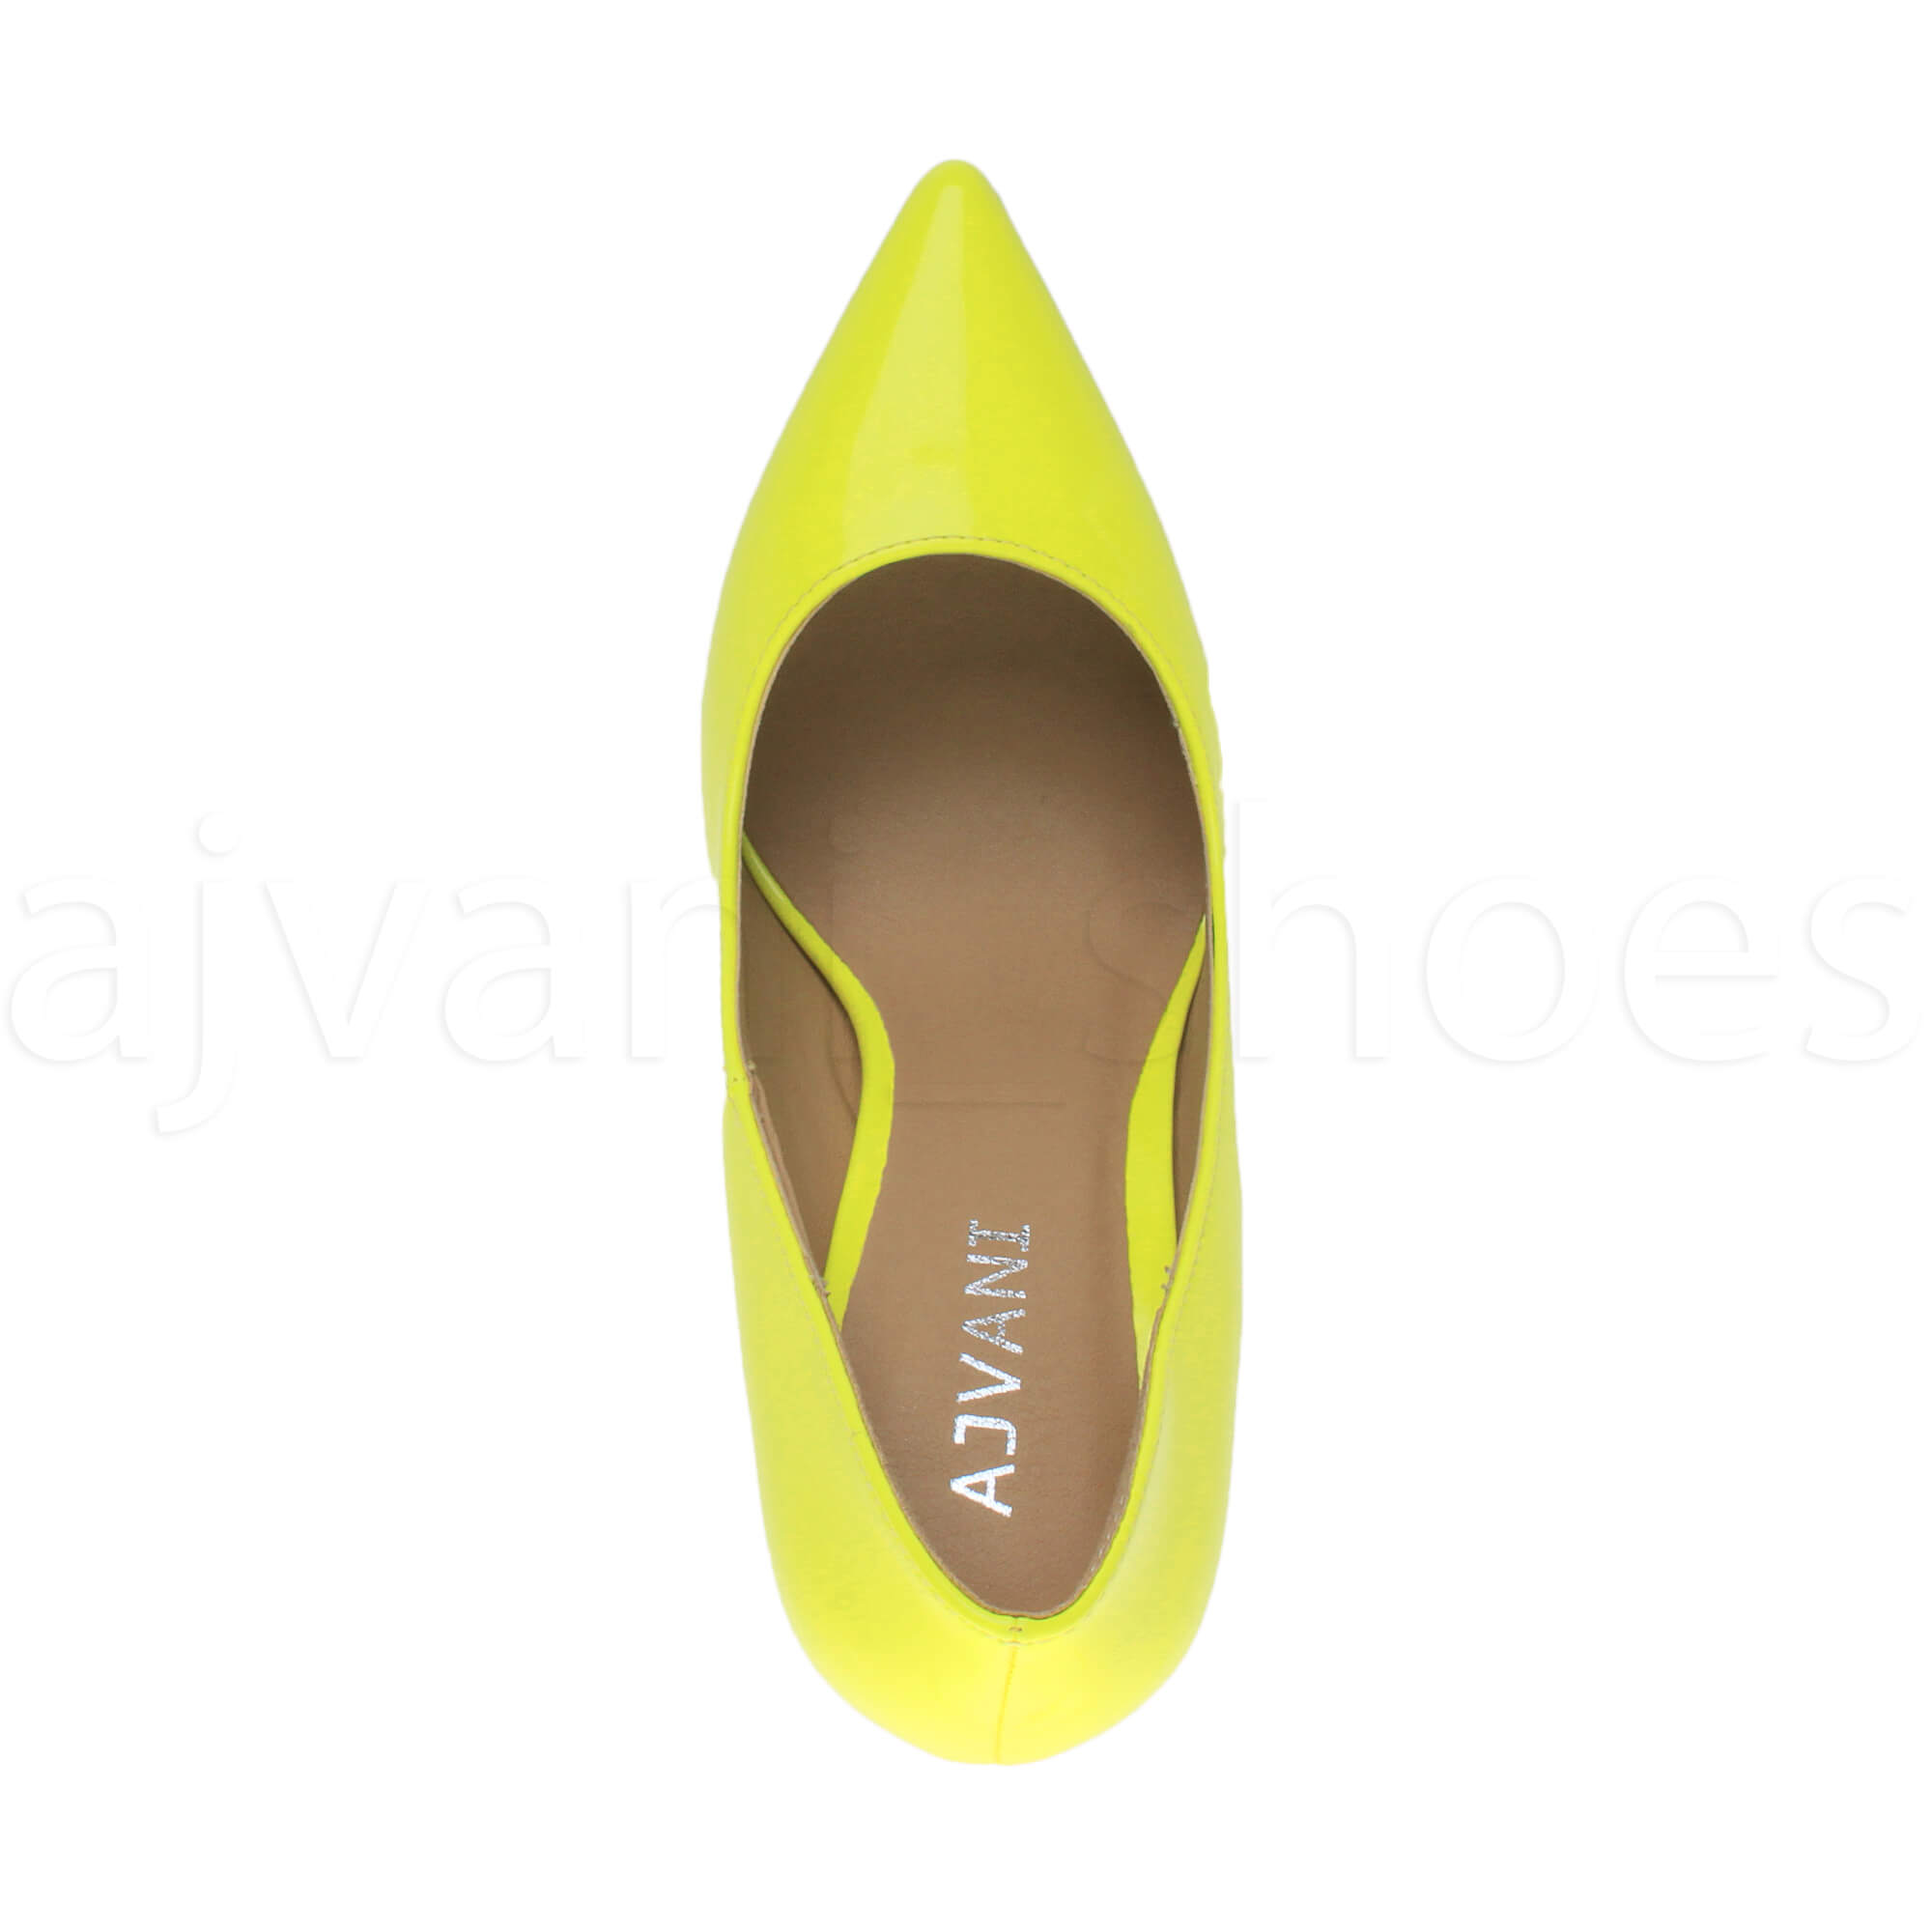 WOMENS-LADIES-HIGH-HEEL-POINTED-CONTRAST-COURT-SMART-PARTY-WORK-SHOES-PUMPS-SIZE thumbnail 134